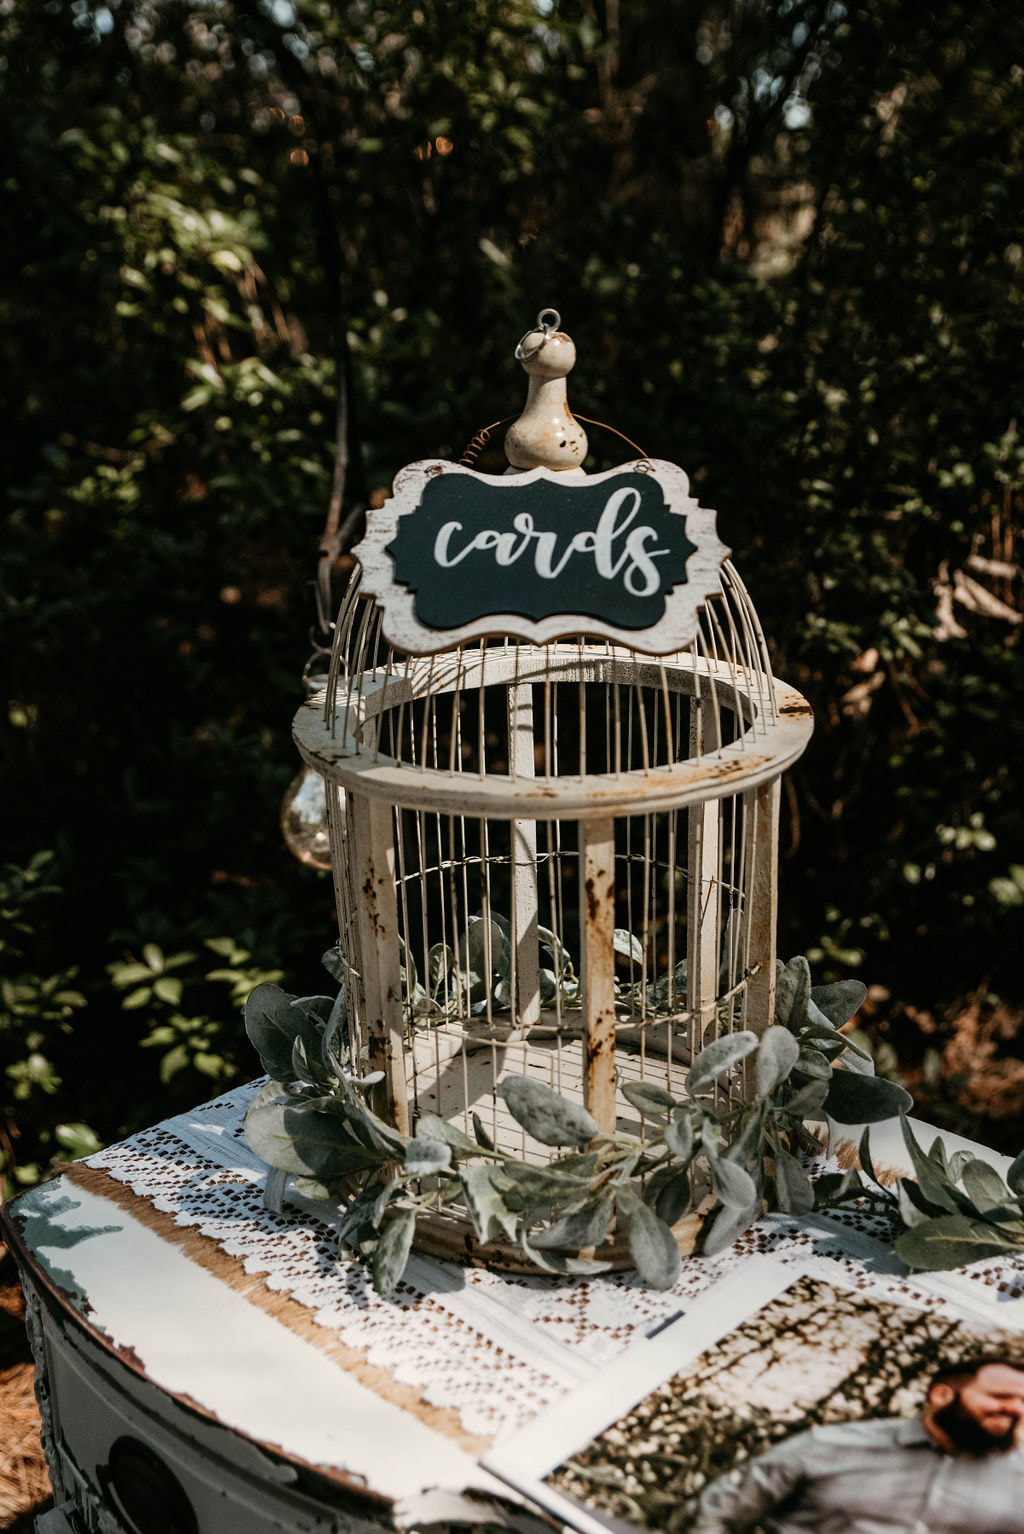 white bird cage with cards chalkboard sign surrounded by lambs ear greenery